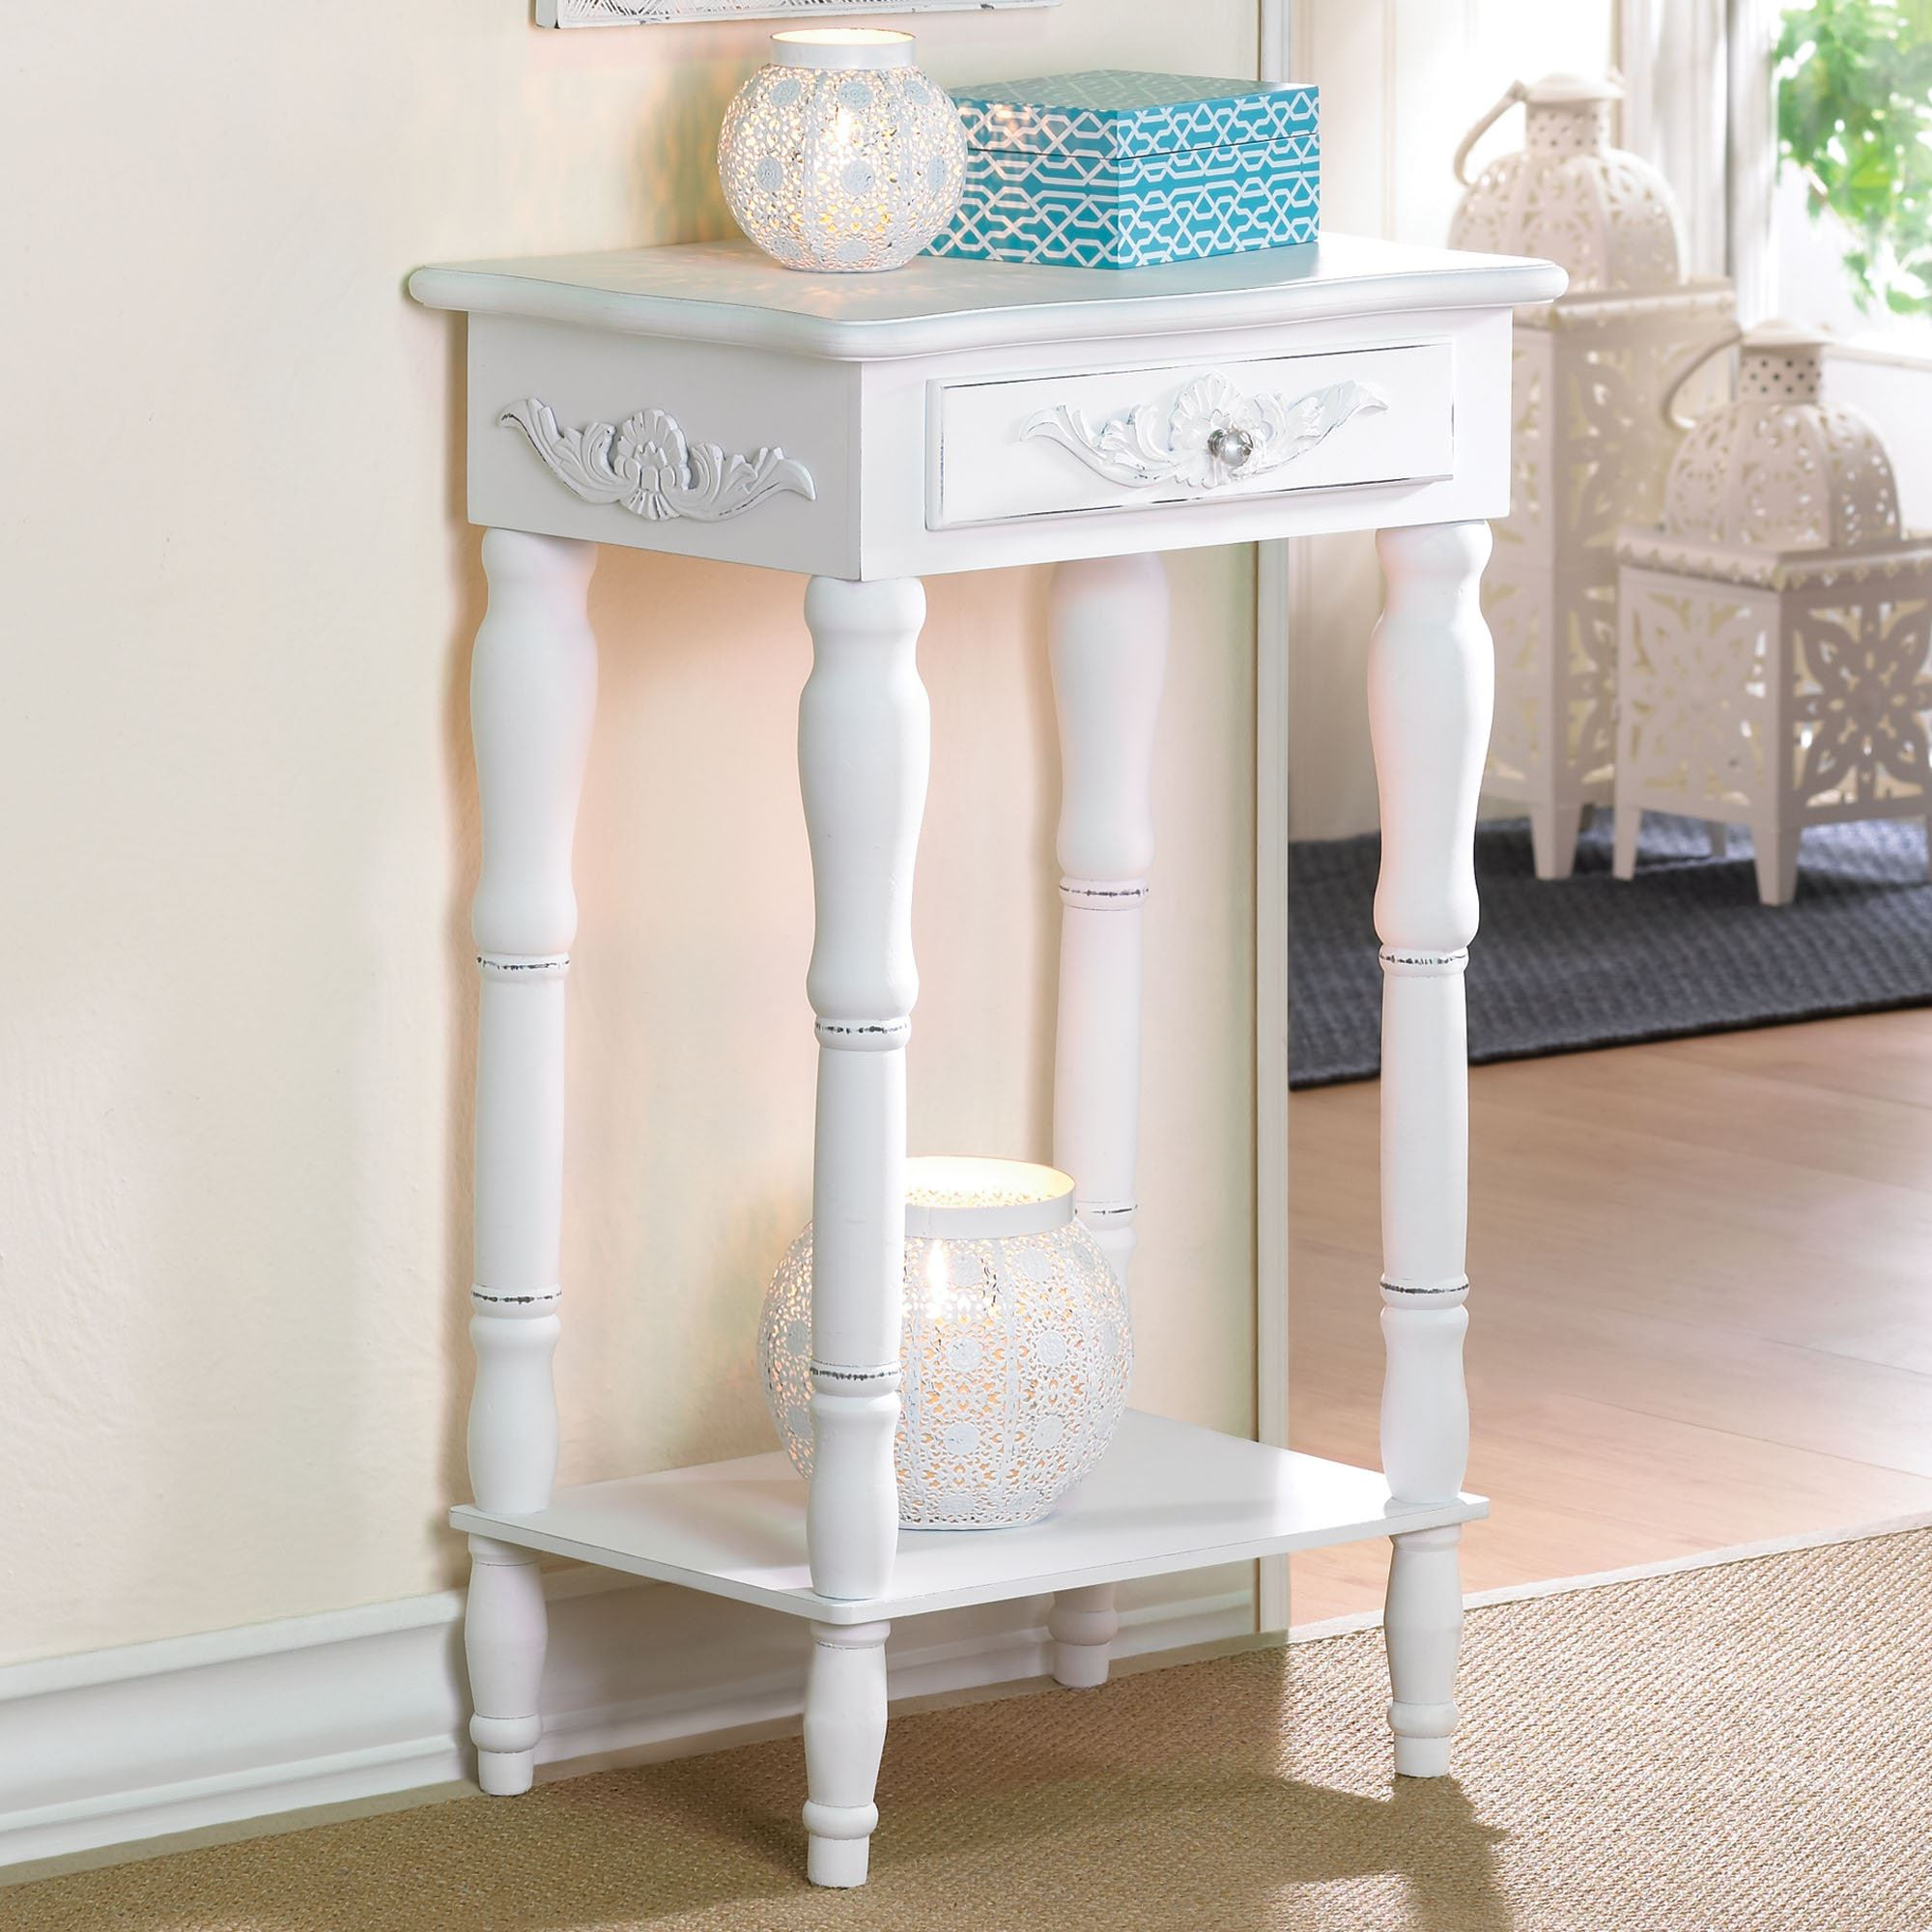 cosenza antique white accent table with drawer small tables touch zoom cherry wood dining and chairs wine rack cabinet furniture retro bottle poolside razer mouse ouroboros inch